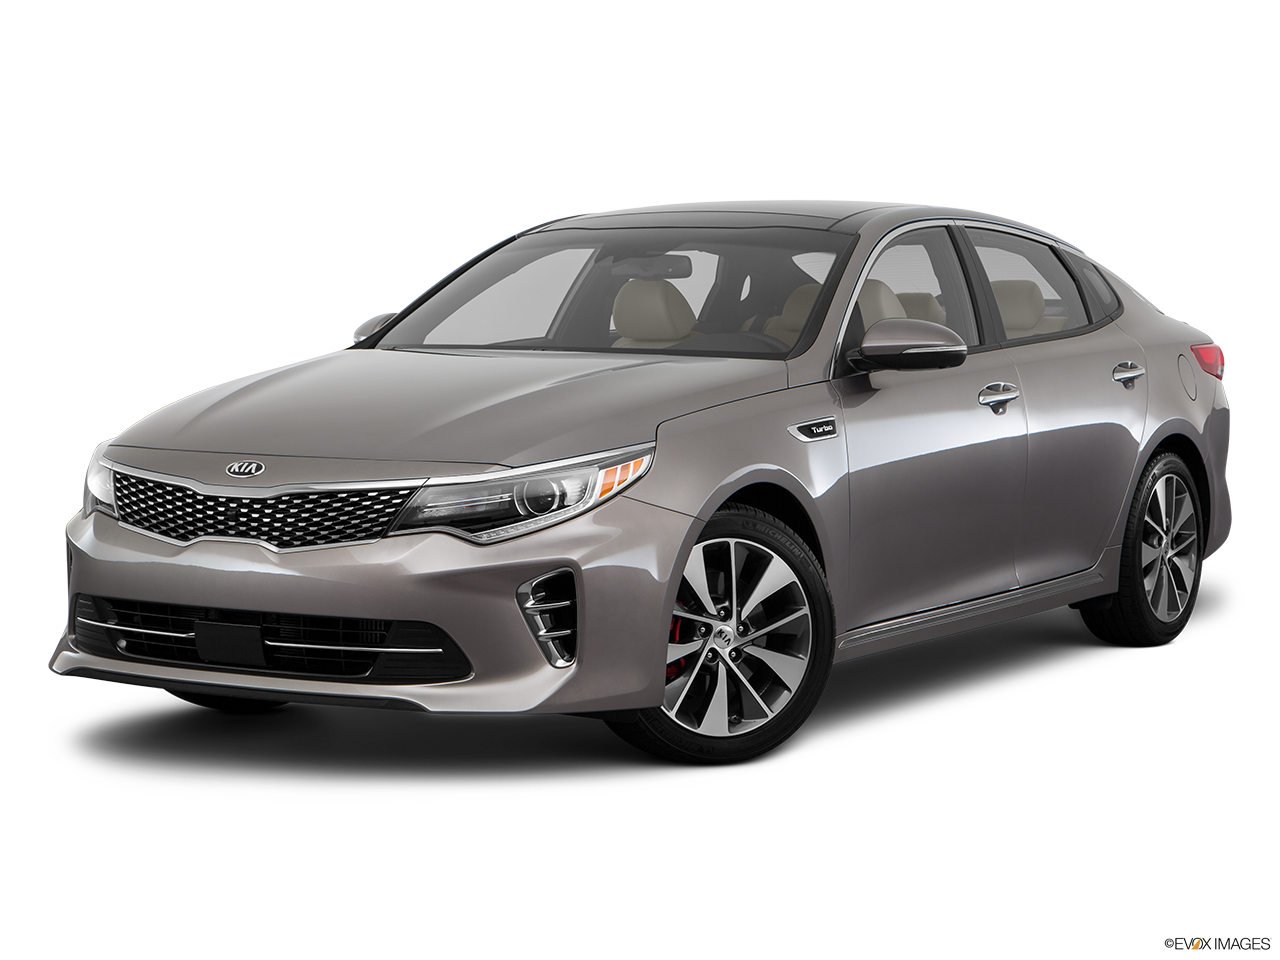 Test Drive the 2017 KIA K900 at KIA Cerritos serving LA and OC